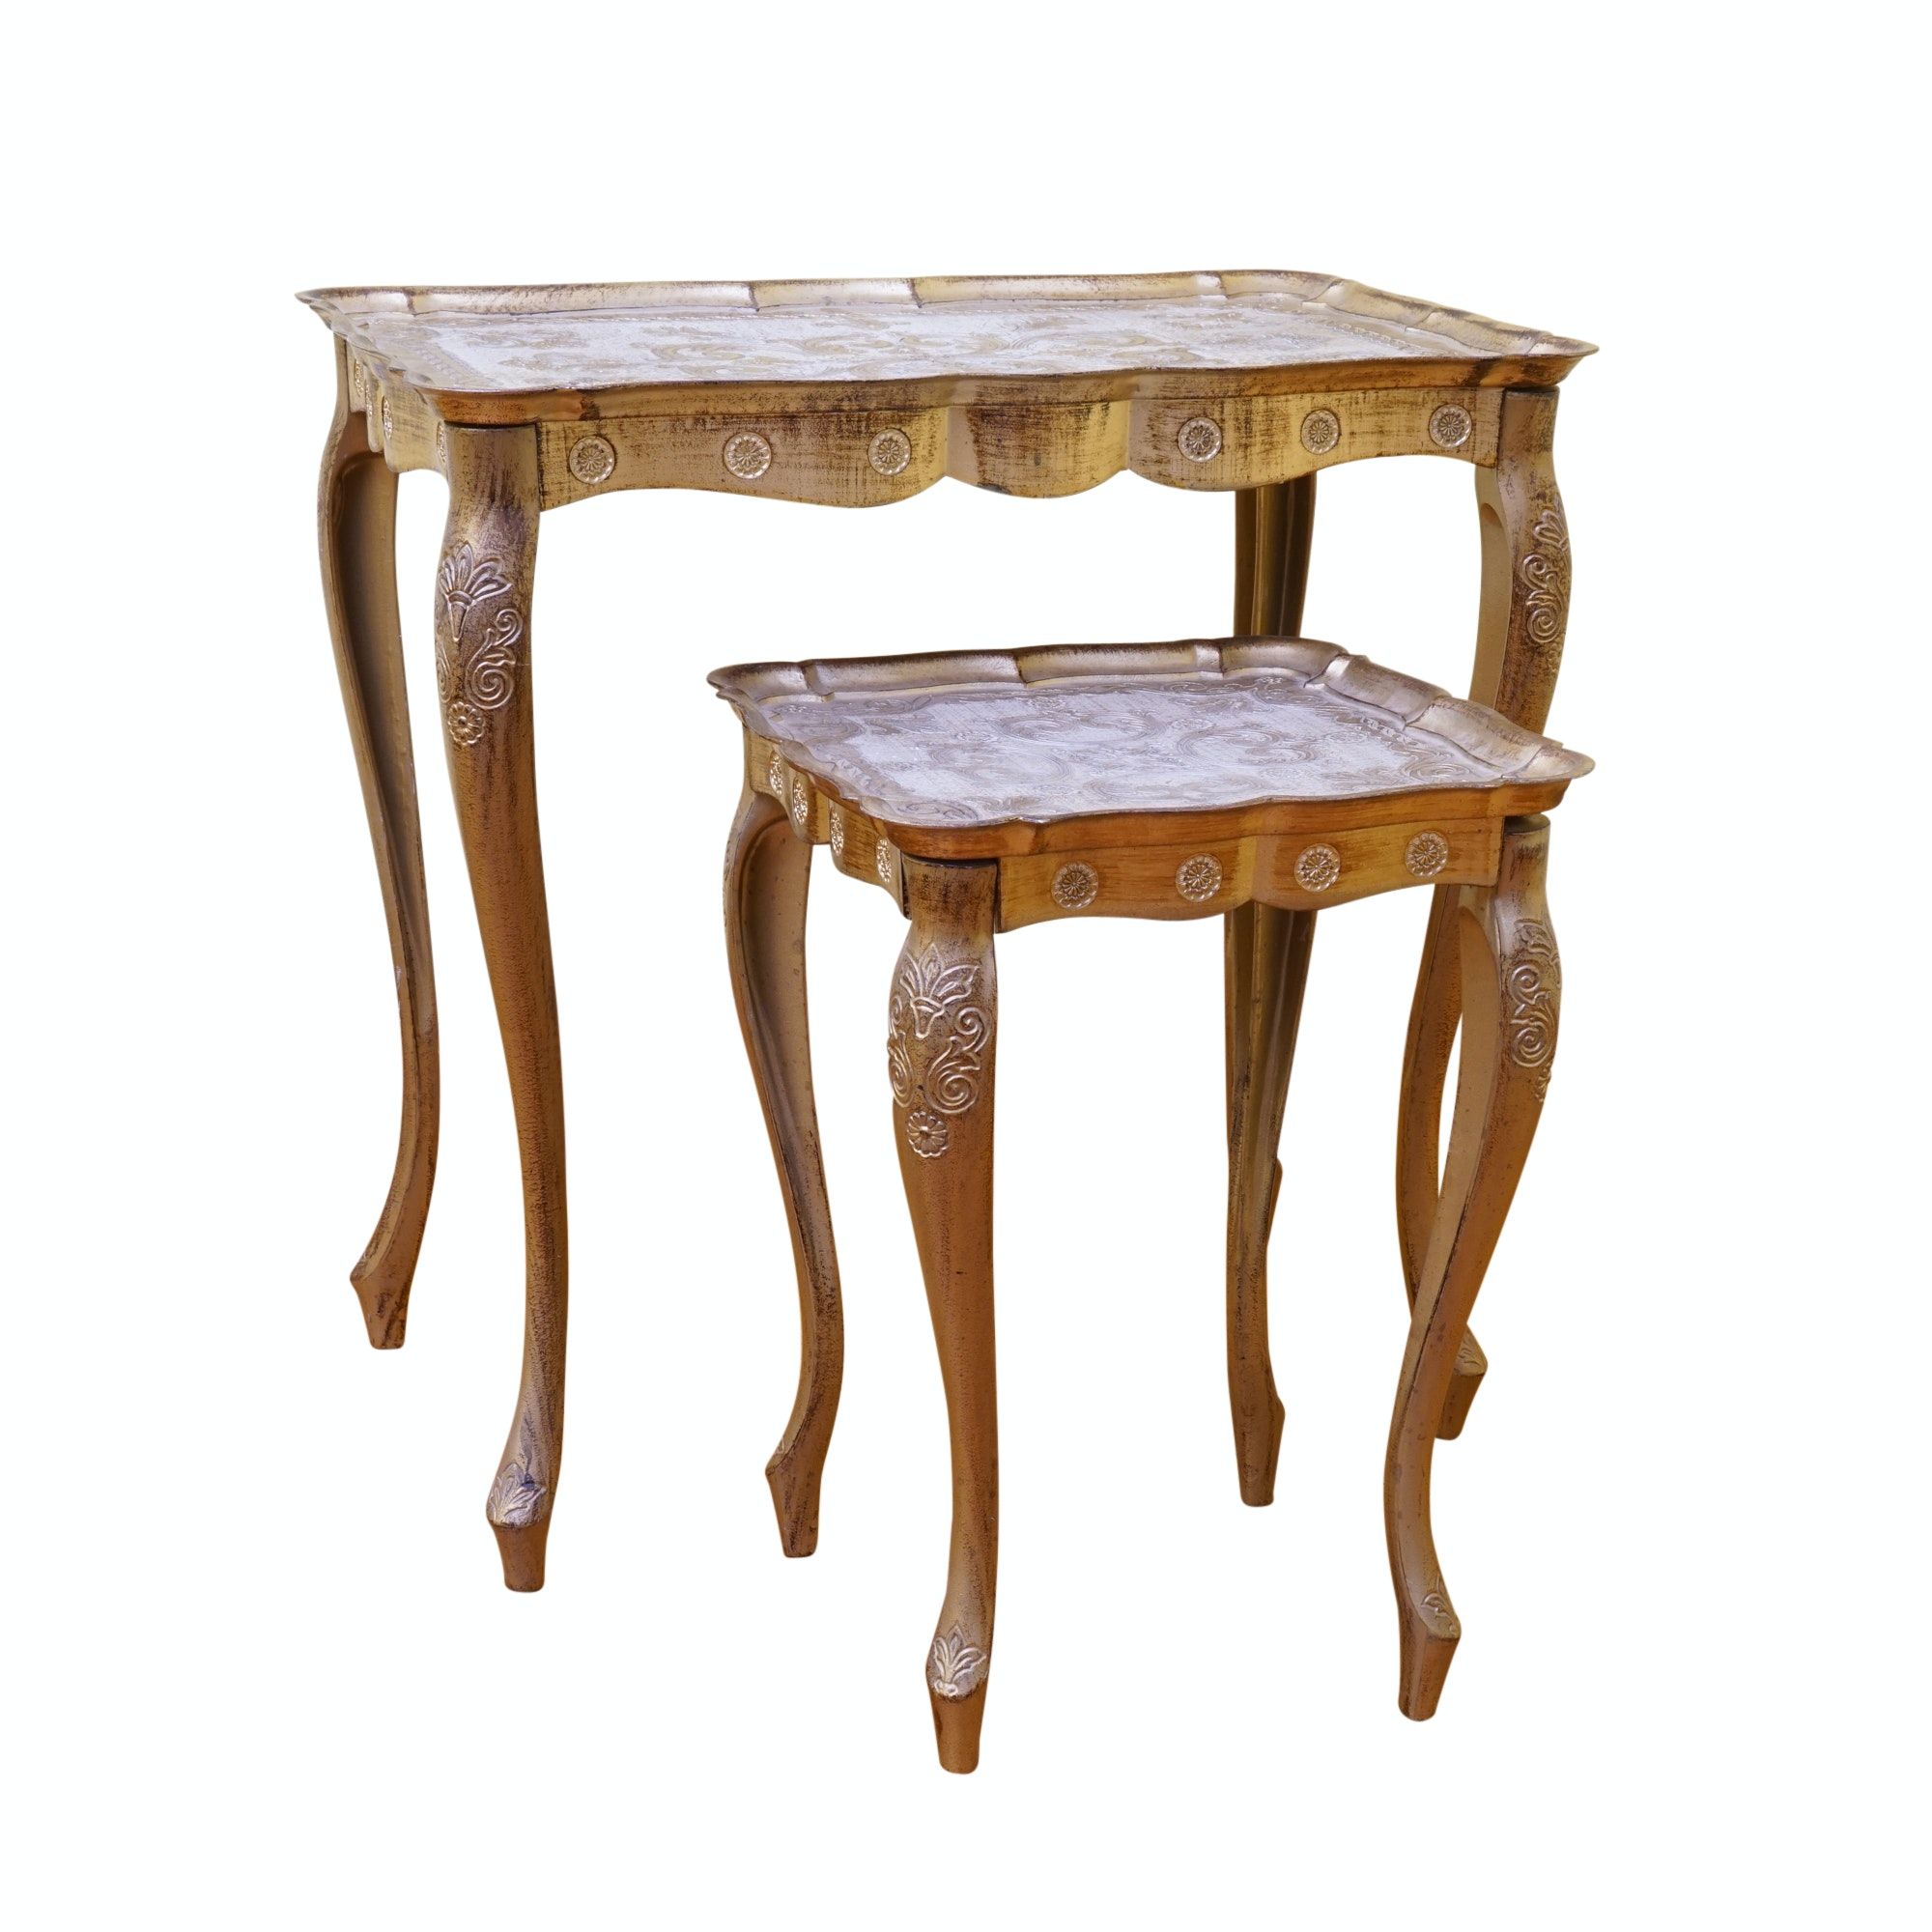 Nesting Tables Made in Florence, Italy